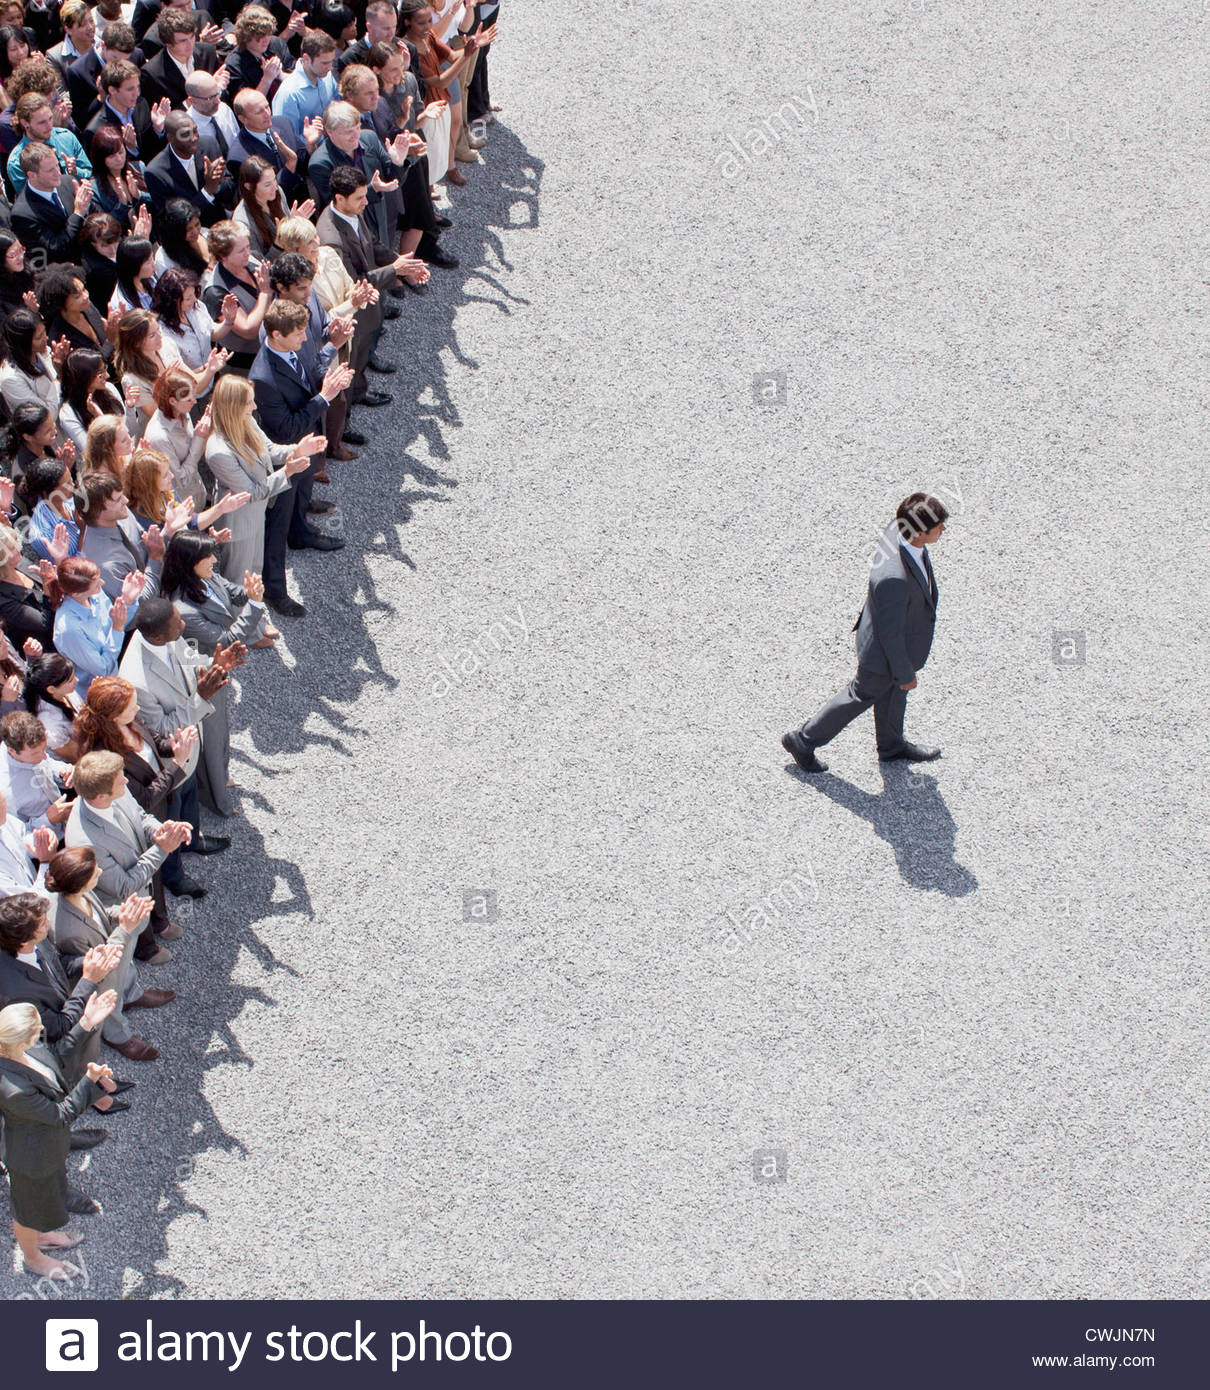 Businessman walking away from clapping crowd - Stock Image